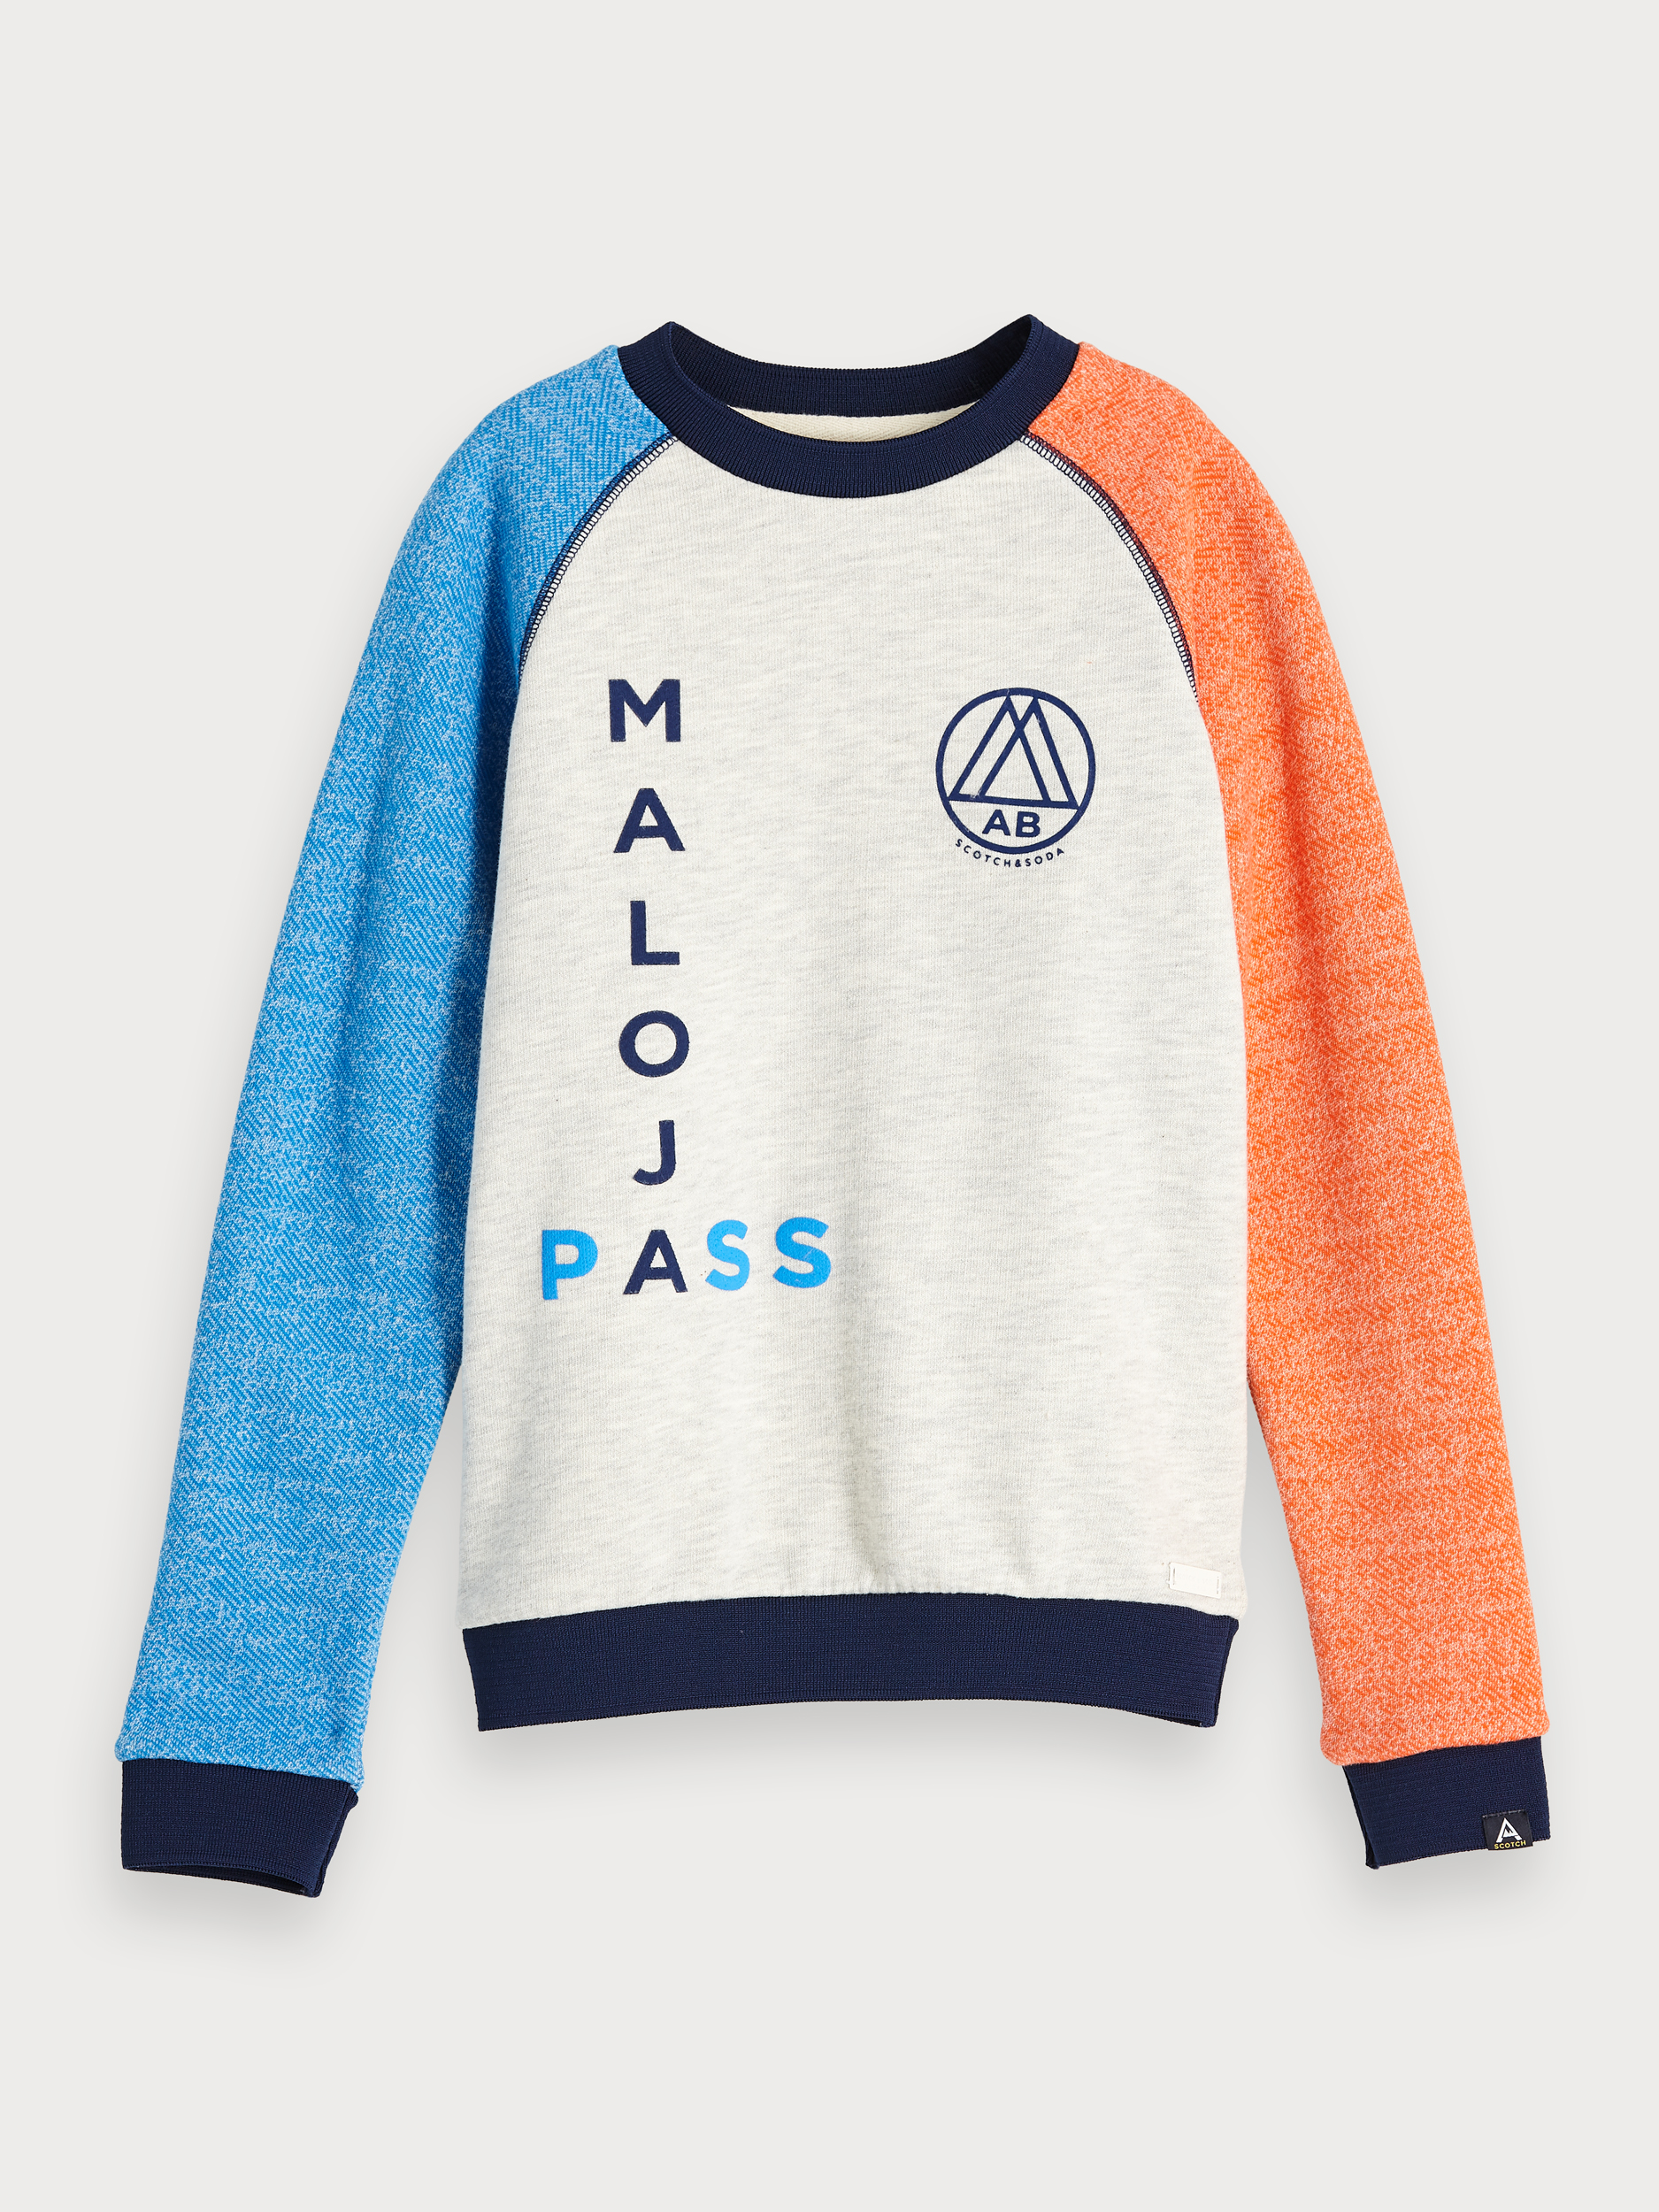 Sweaters for boys